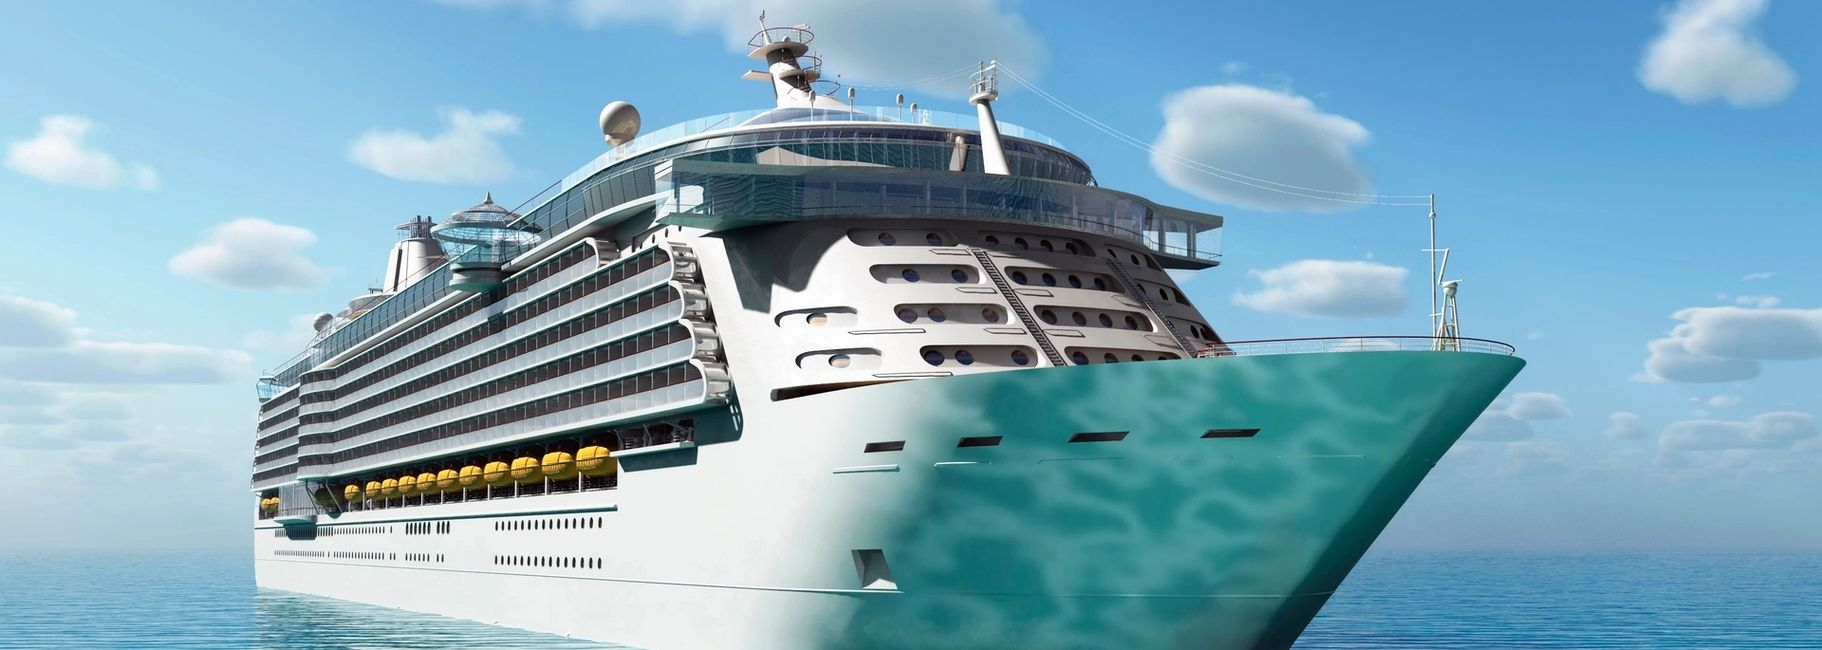 Port Everglades Cruise Shuttles, Port of Miami Cruise Shuttles,  Cruise Port Shuttles to FLL.